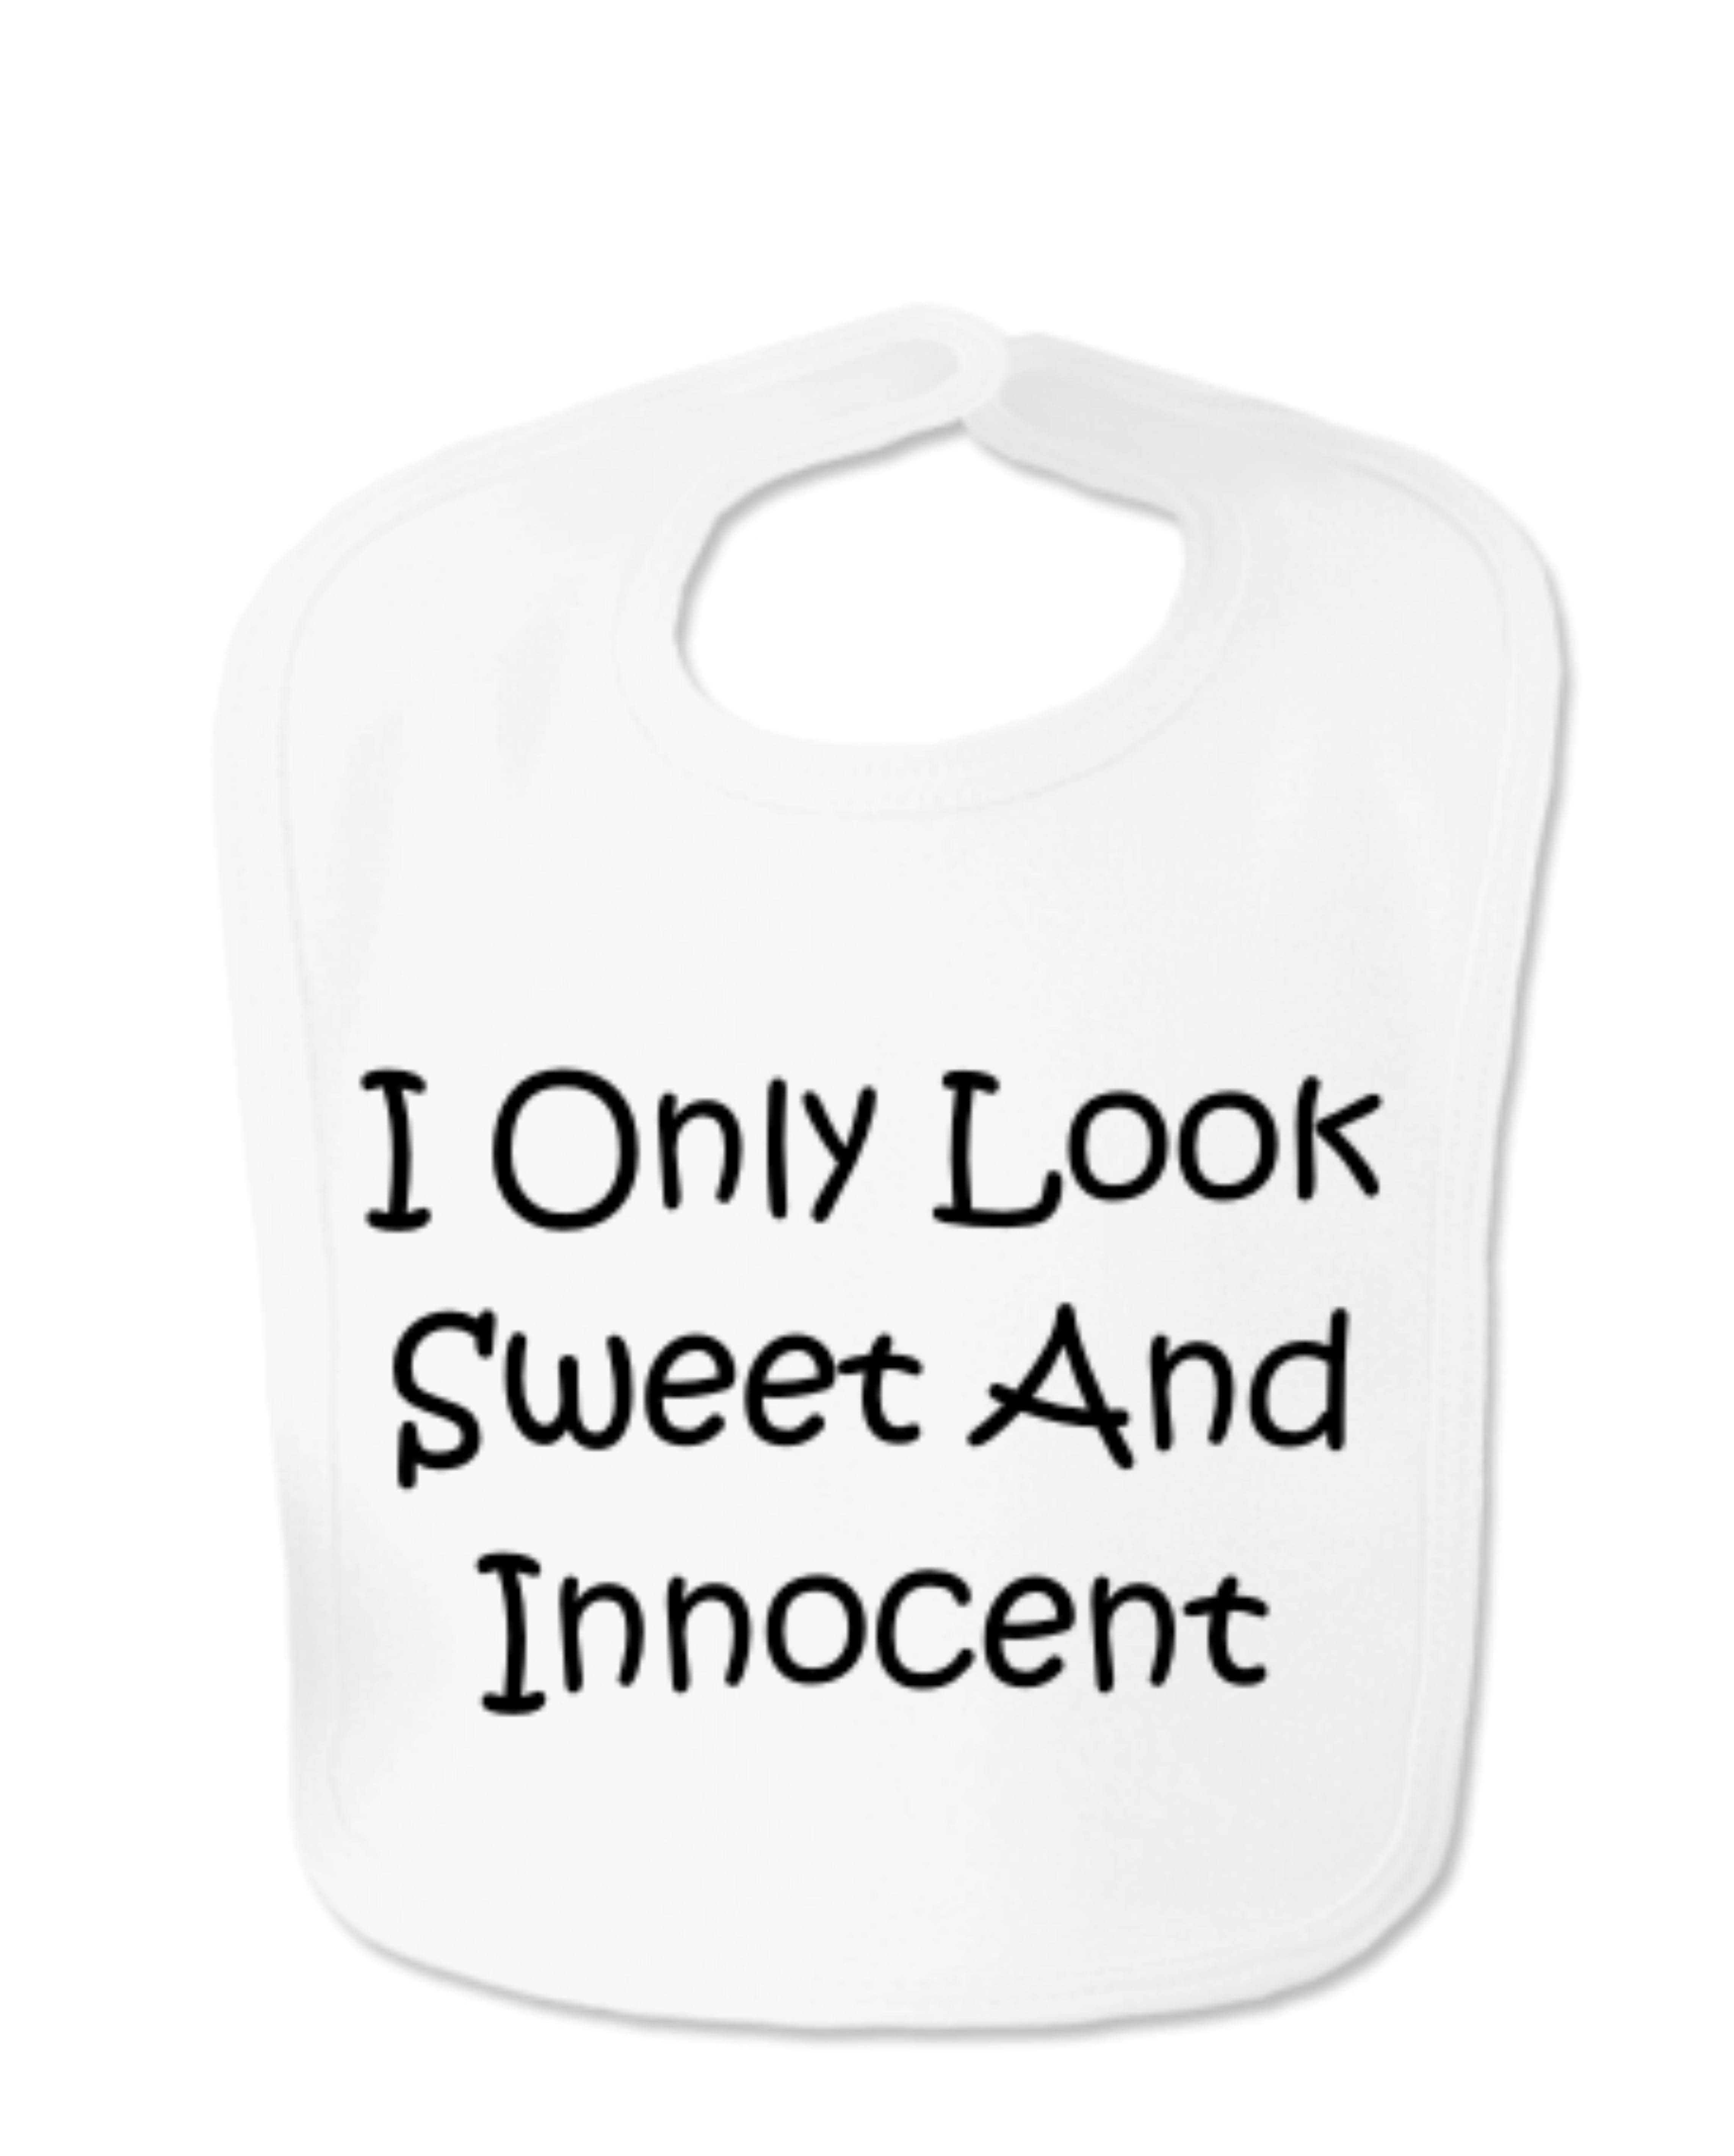 White I Only Look Sweet And Innocent Velcro Baby Bib